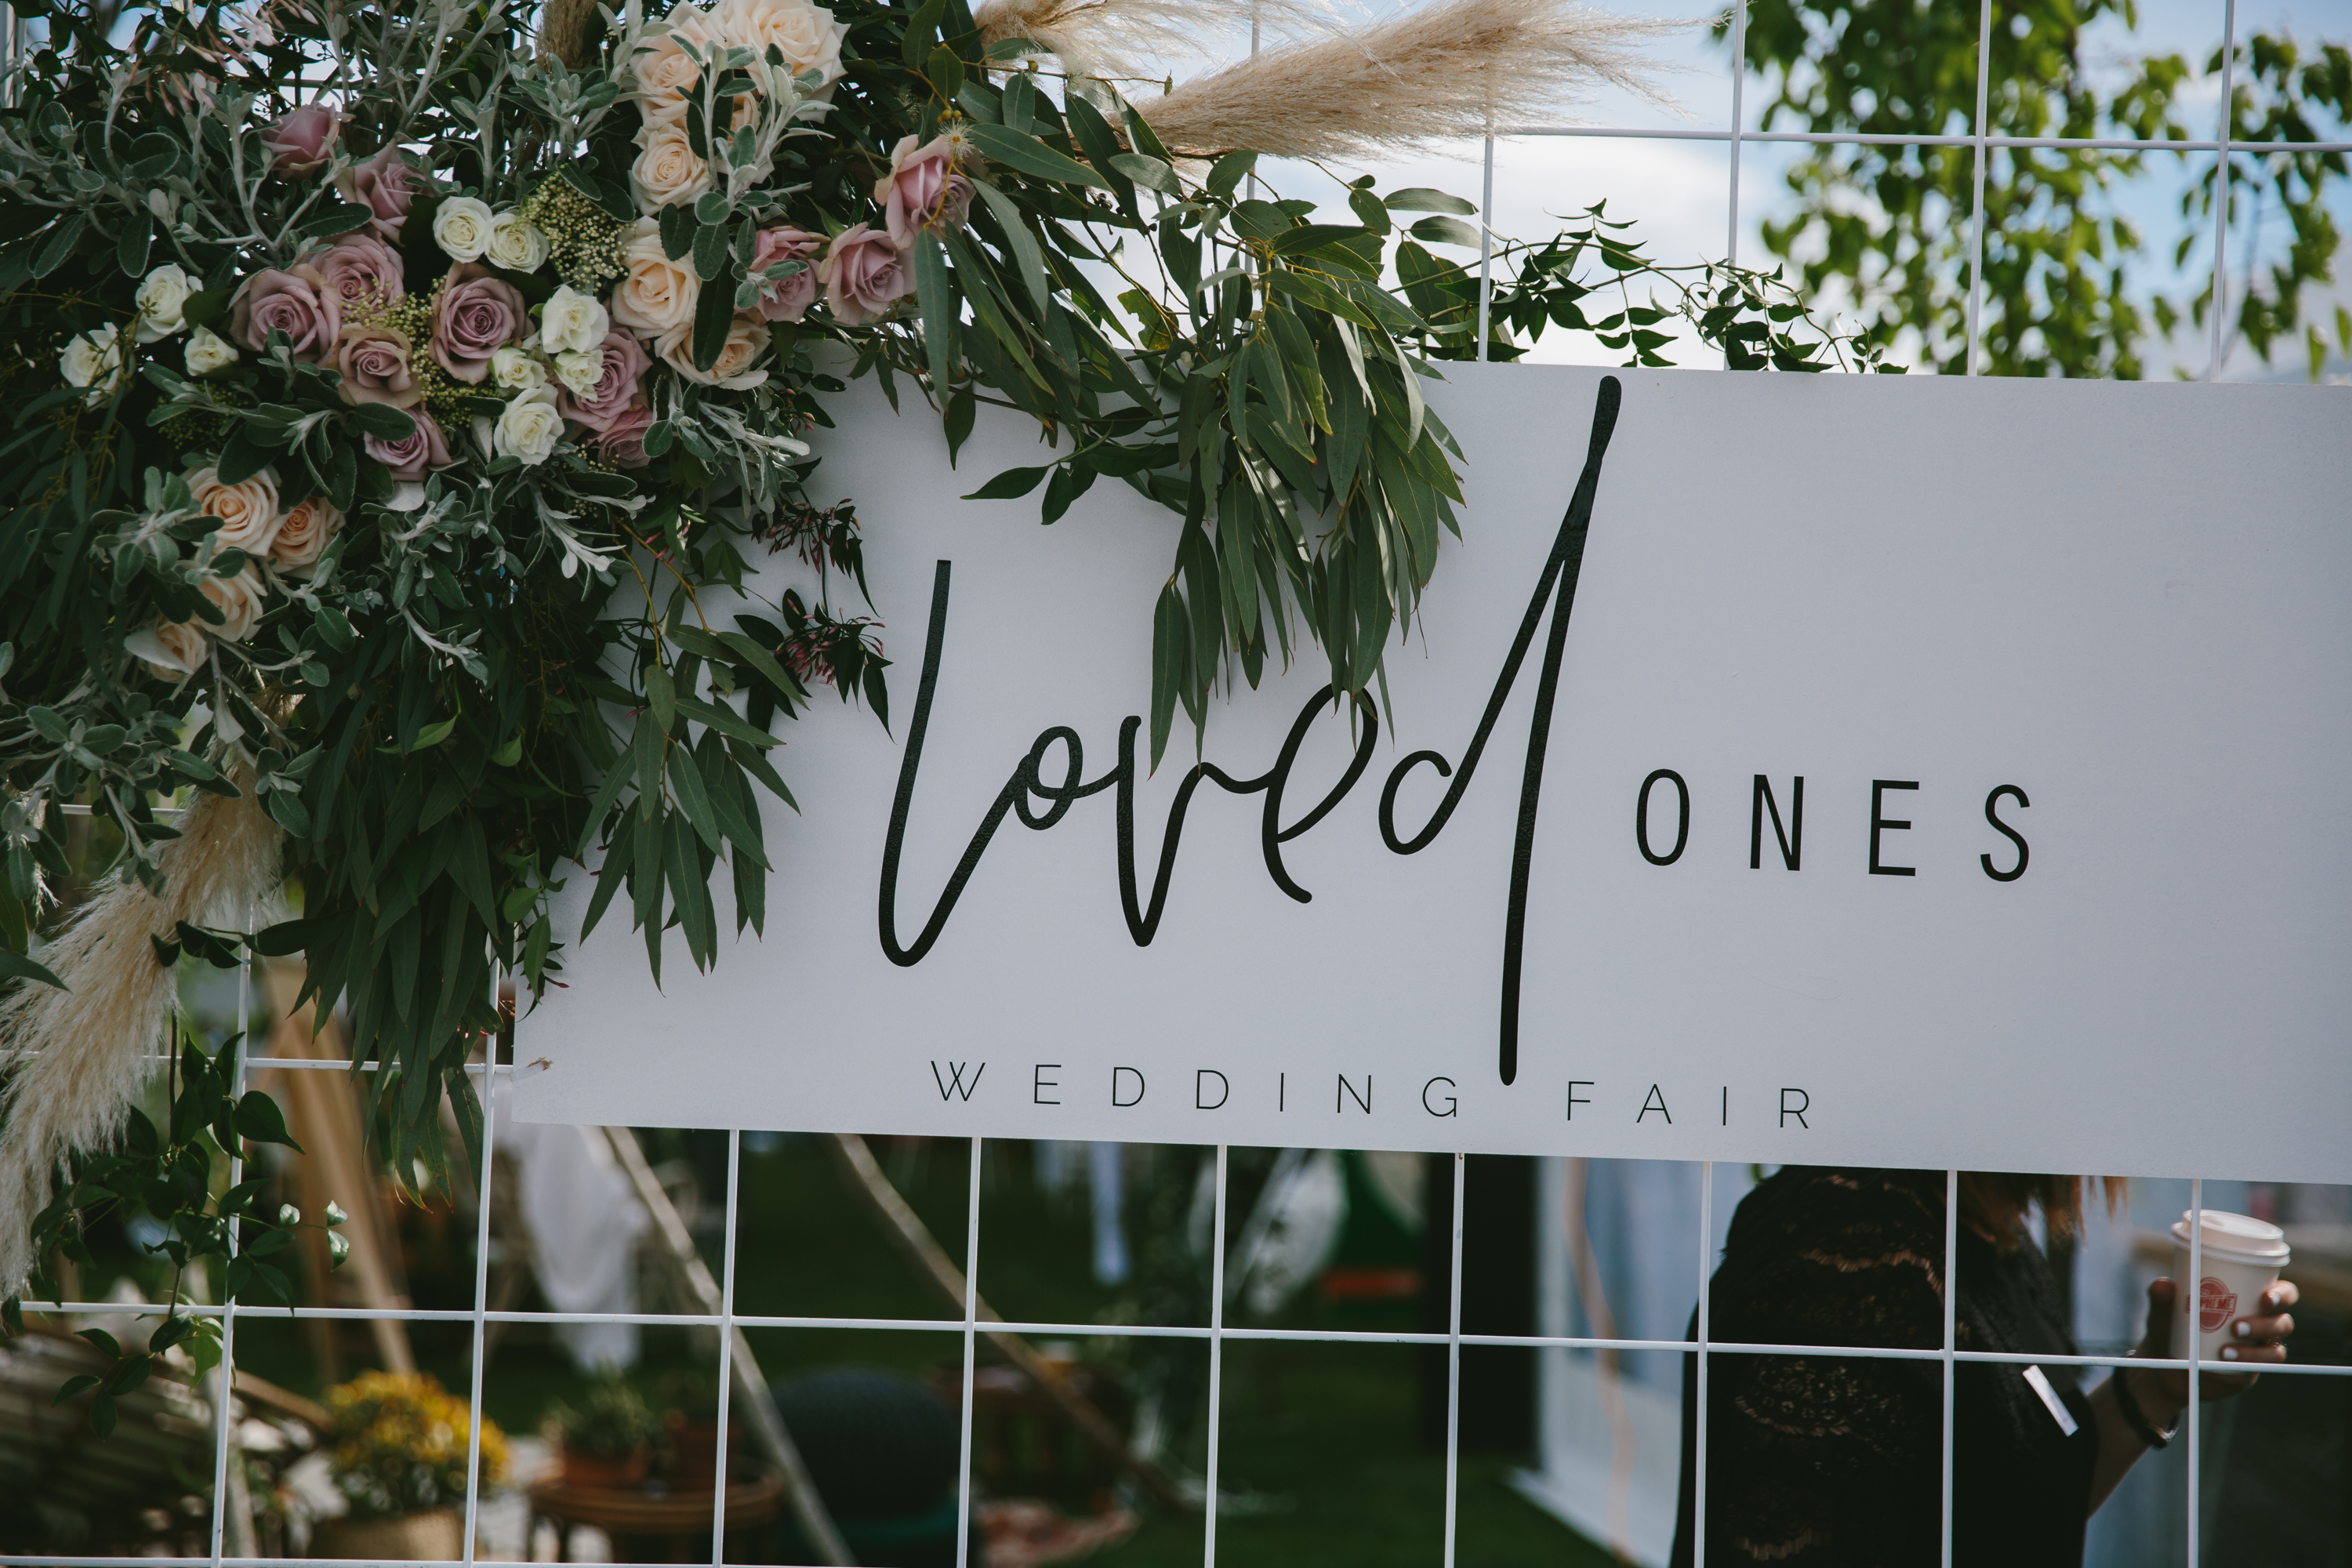 -Loved Ones Wedding Fair